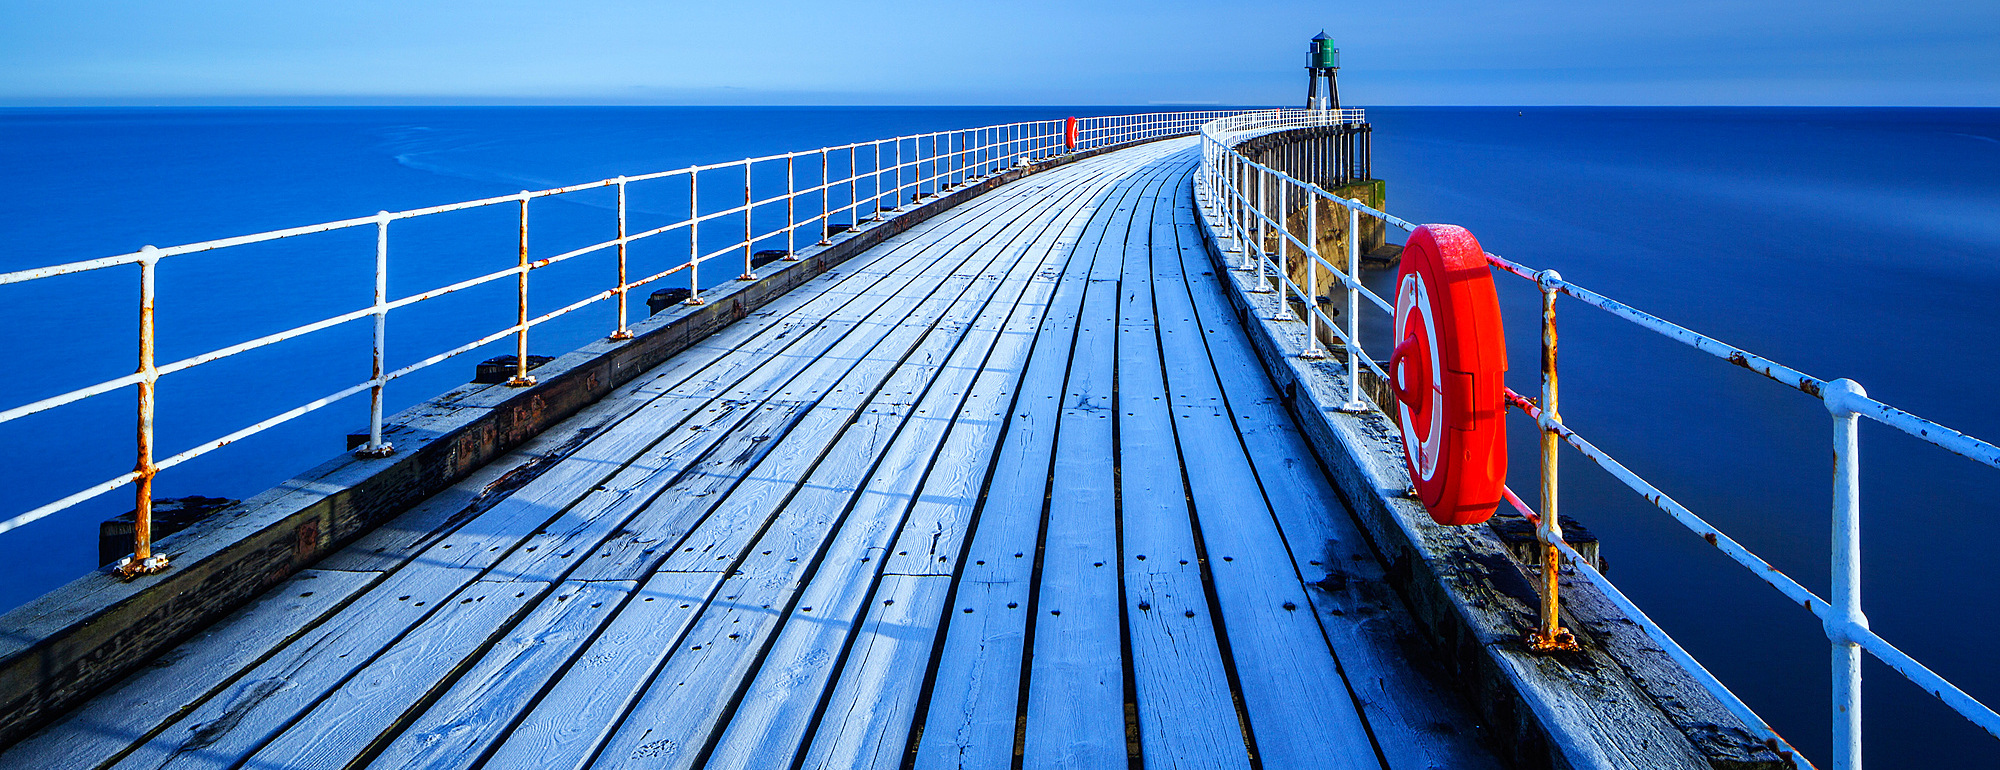 1219-108 ( Garry Ridsdale ) - Frost sits on the timbers of Whitby Pier as it extends out to the sea on a cold winters morning, Whitby, North Yorkshire, Yorkshire, England, United Kingdom, Europe